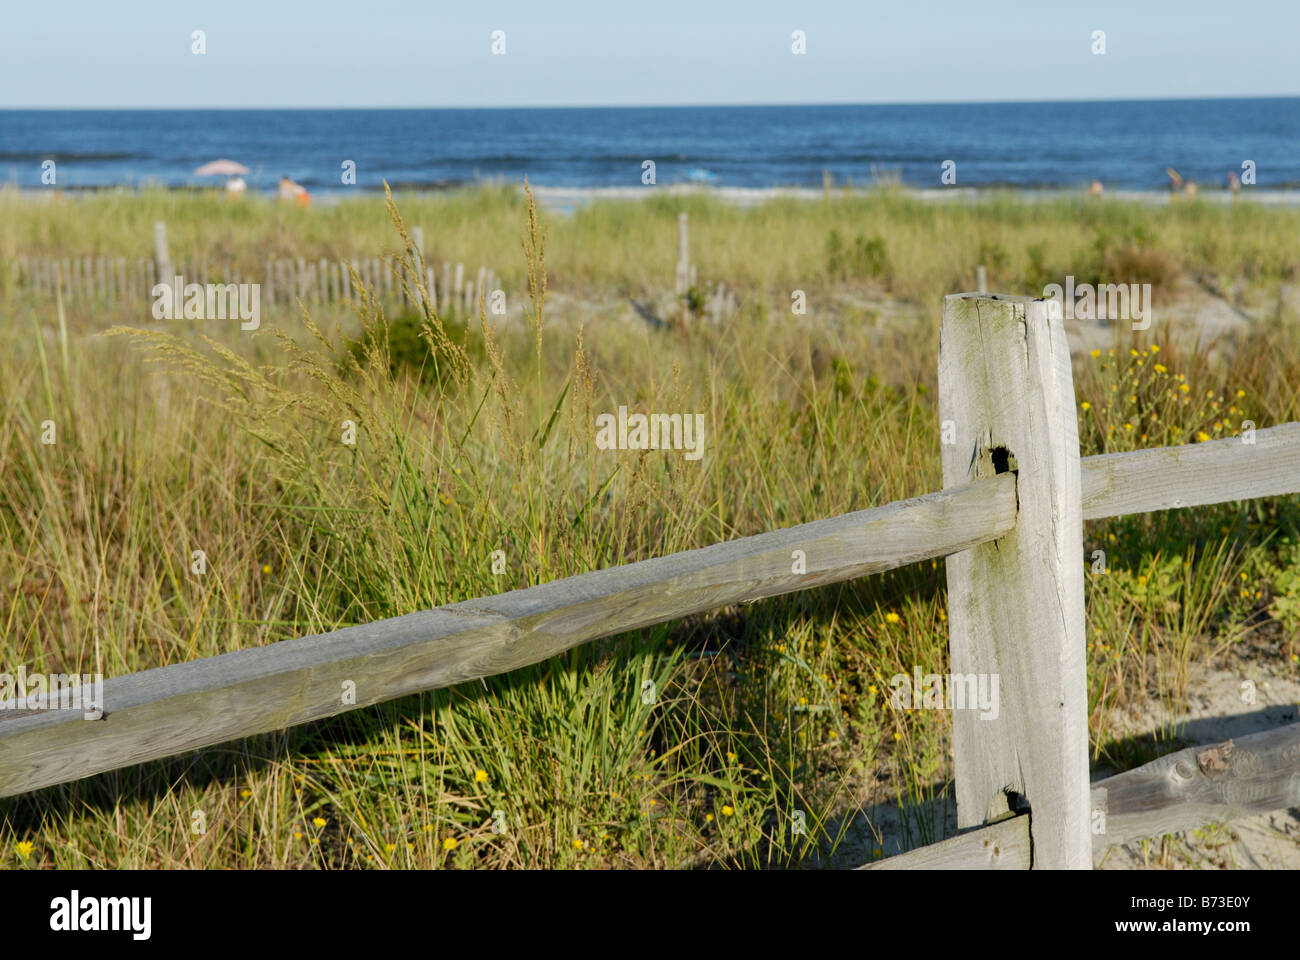 Beach with protected grasses on dunes for stabilzation and preservation from erosion, Avalon, New Jersey. - Stock Image